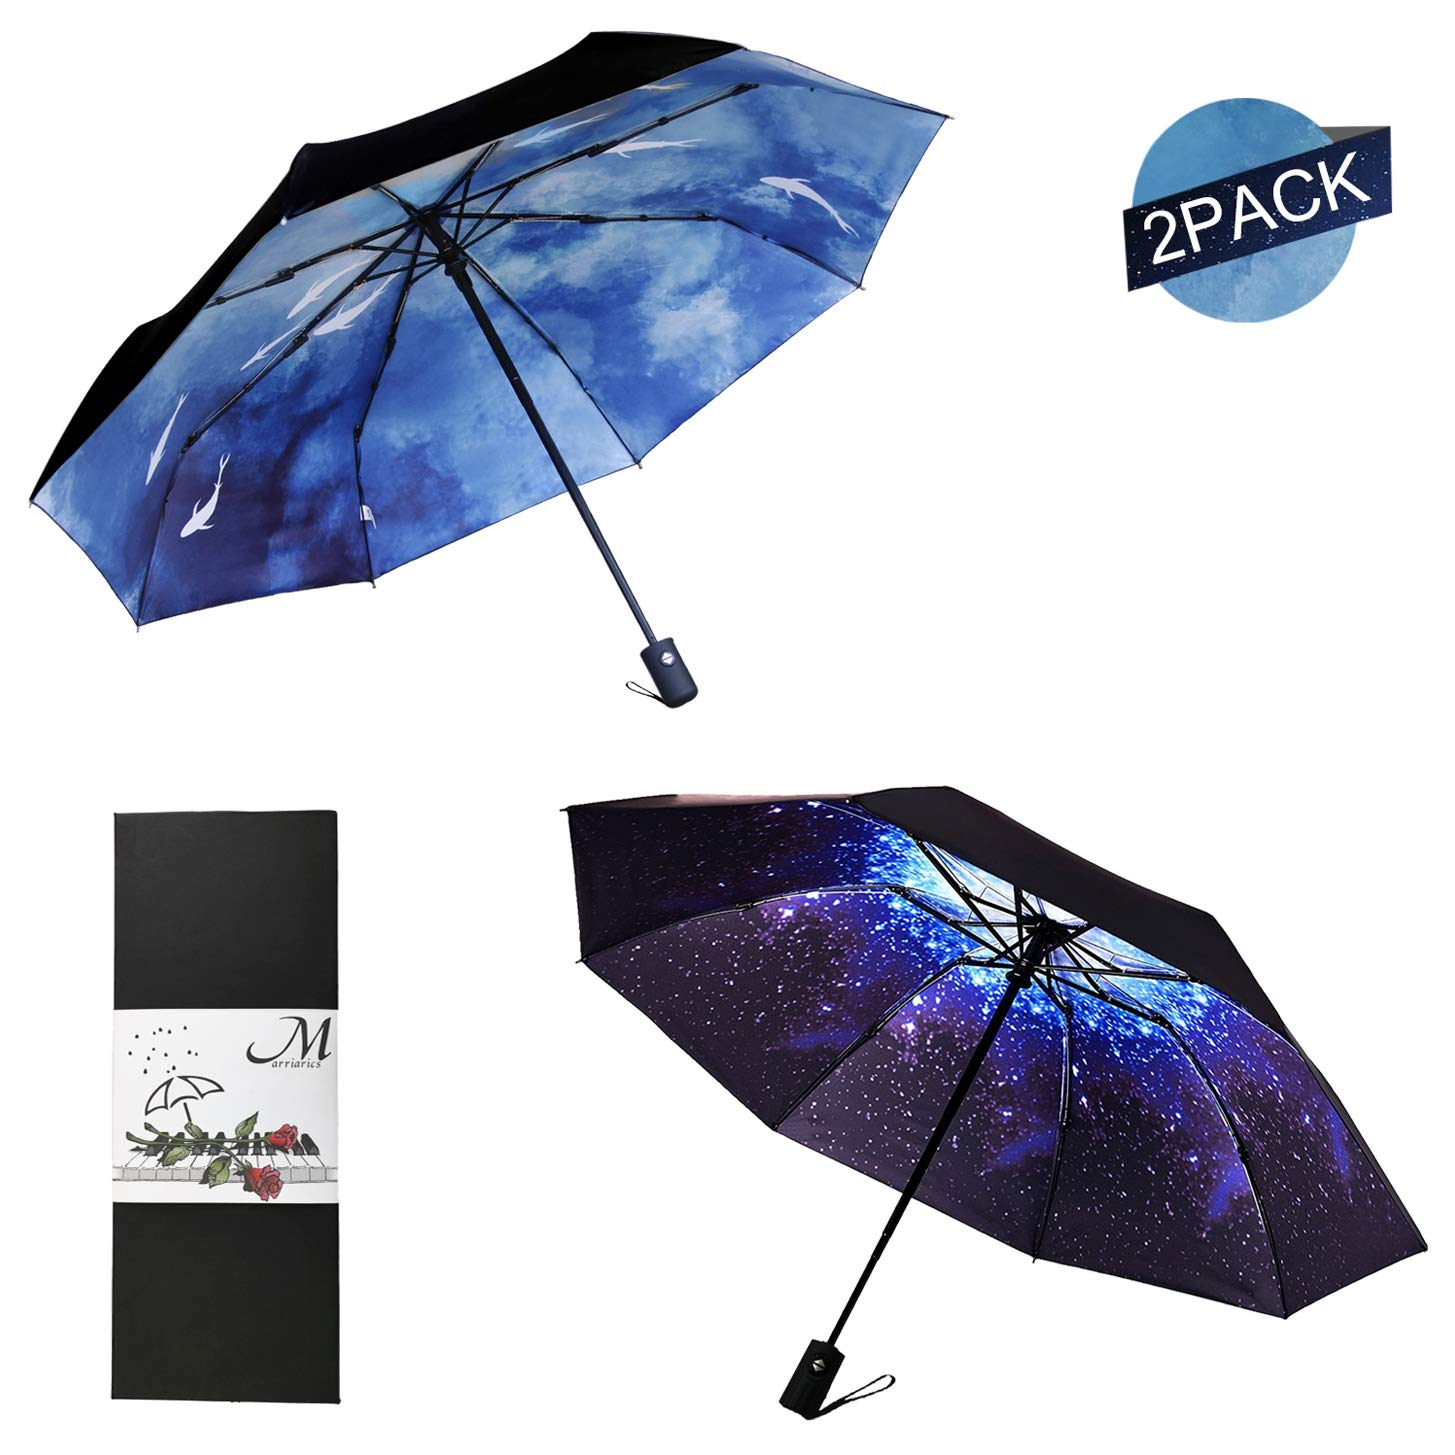 Marriarics Compact Travel Umbrella Windproof, A Set of Starry Sky and Ink and Wash, Nice Package for Gift.